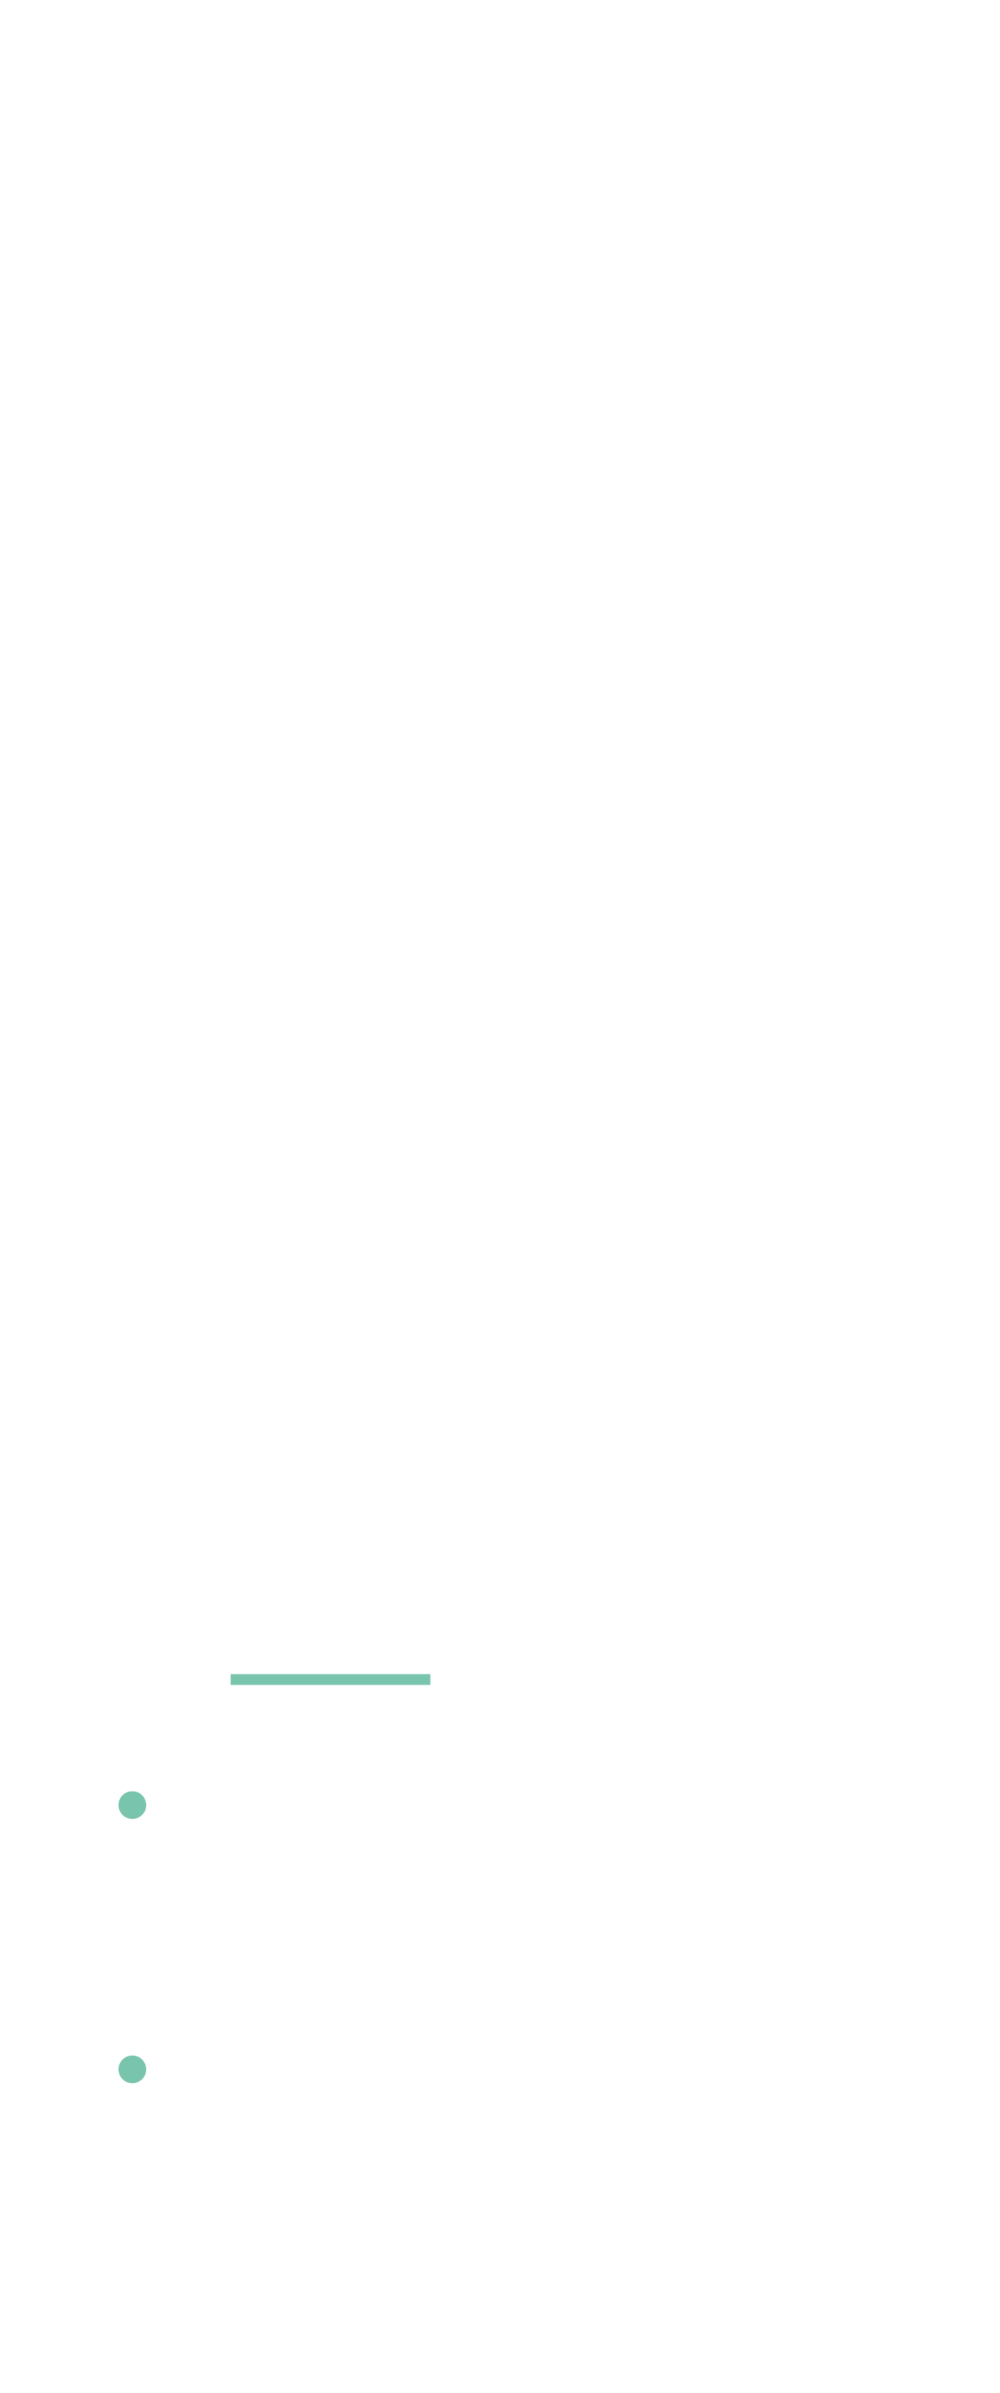 6 Innovation through a holistic understanding-16.png